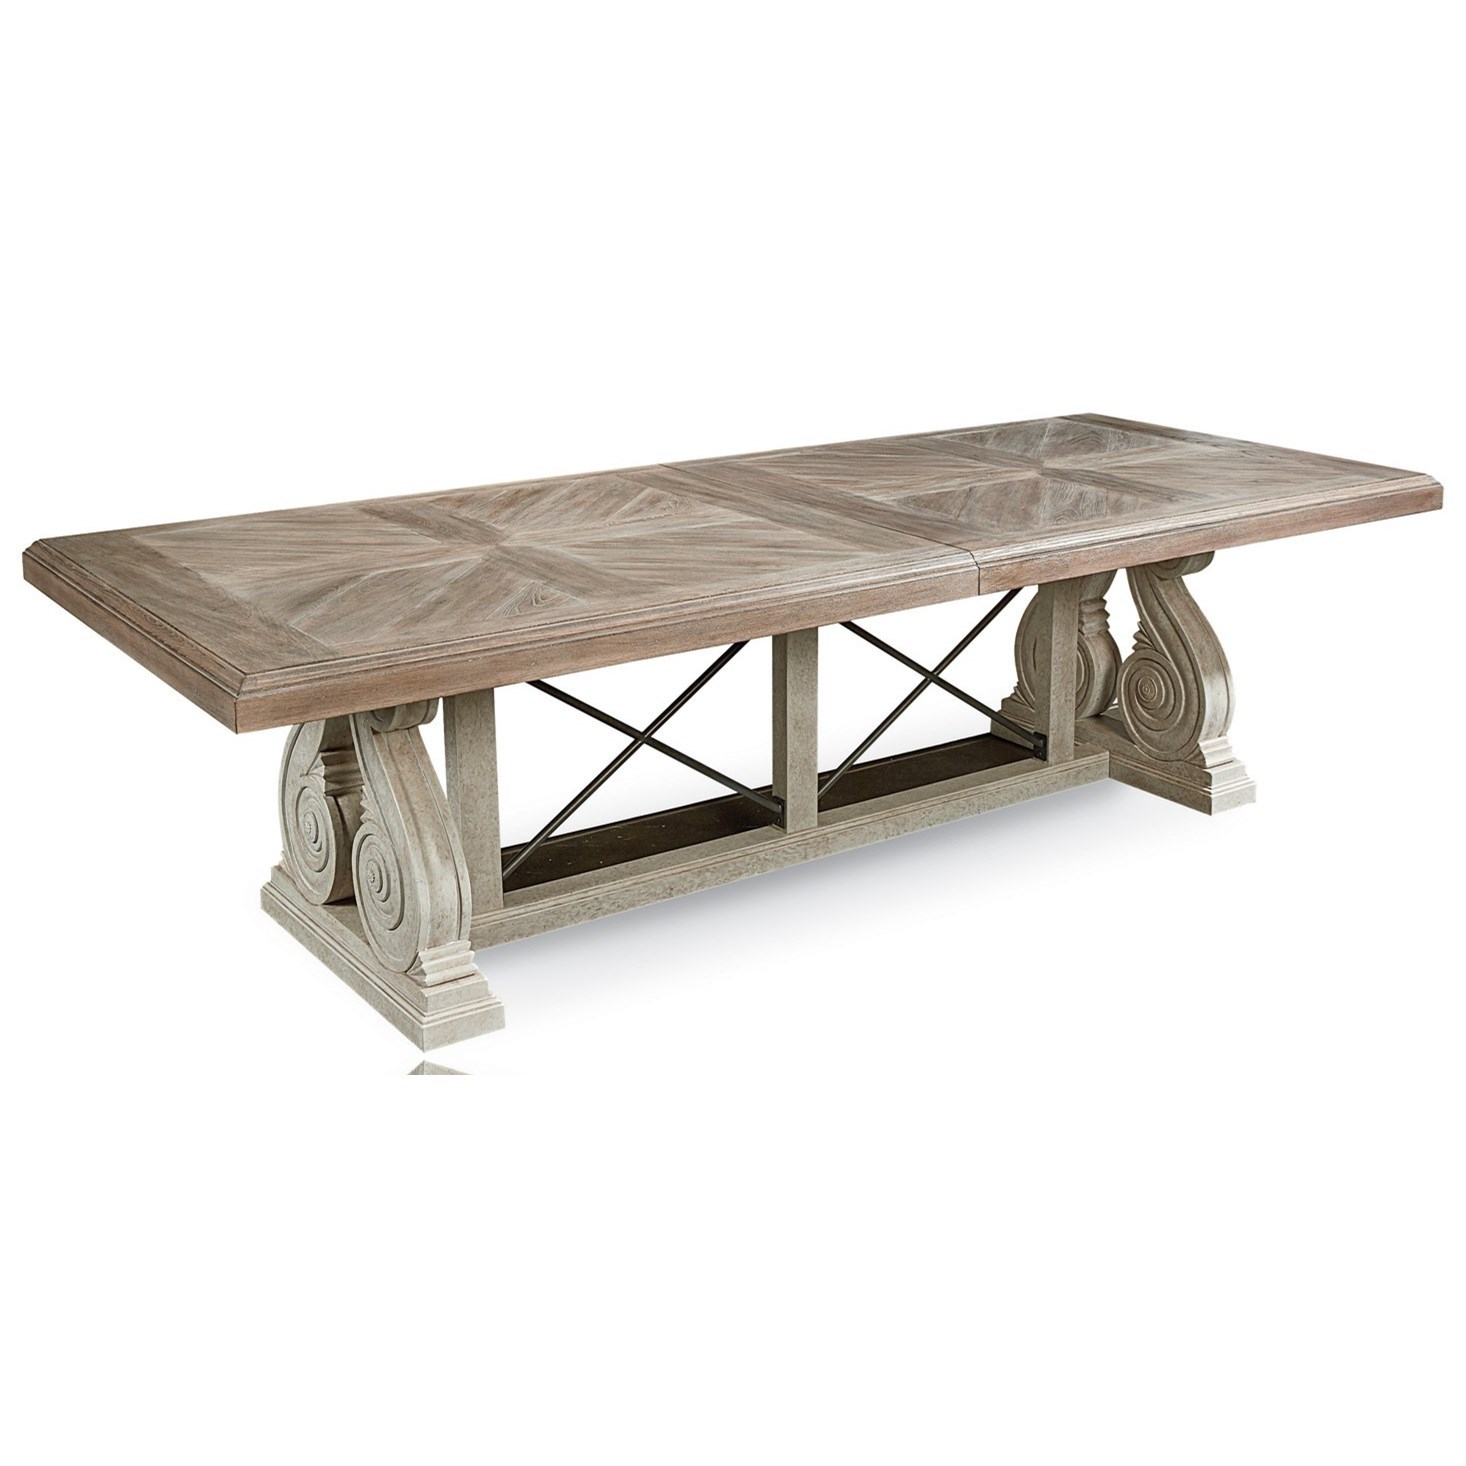 Arch Salvage Pearce Dining Table by A.R.T. Furniture Inc at Baer's Furniture